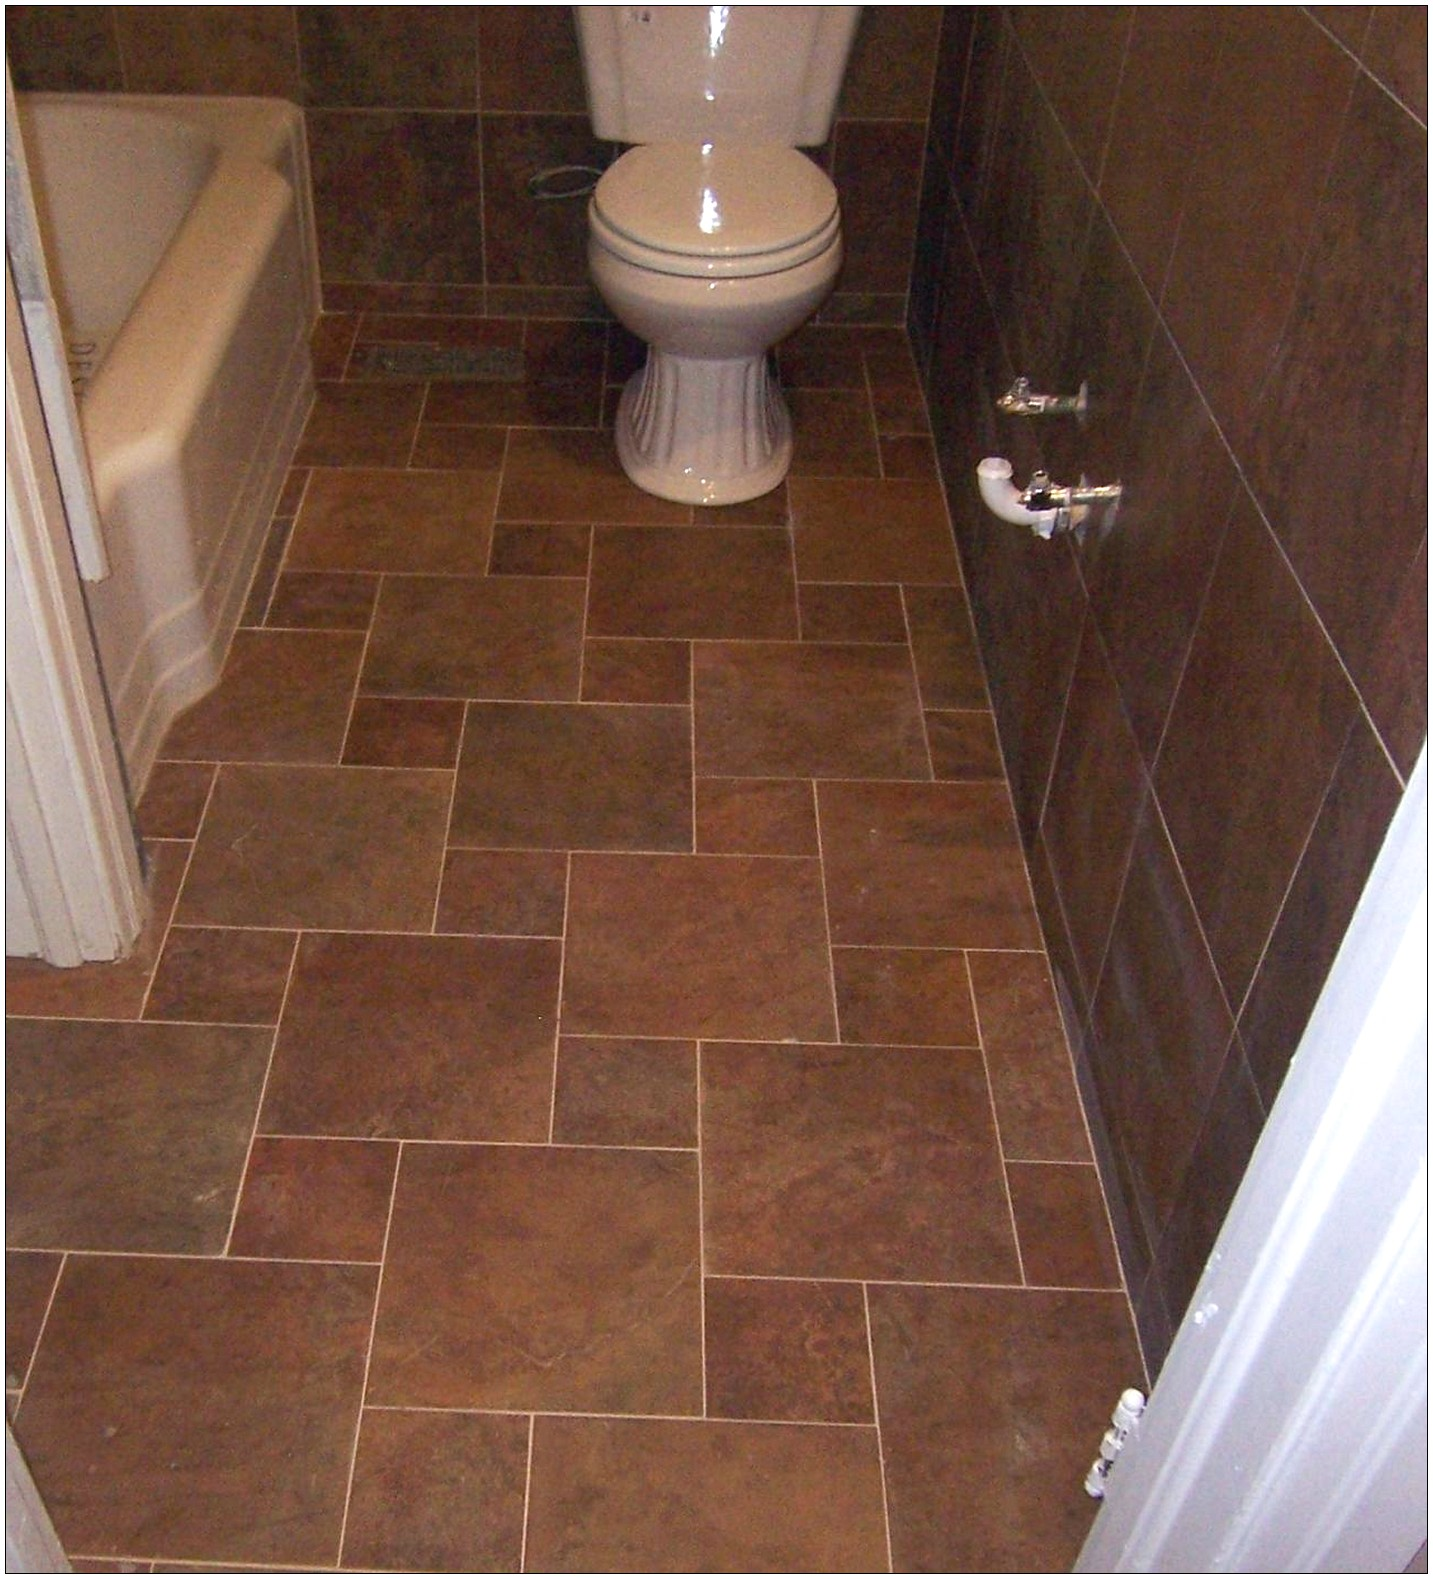 Bathroom-floor-tile-patterns